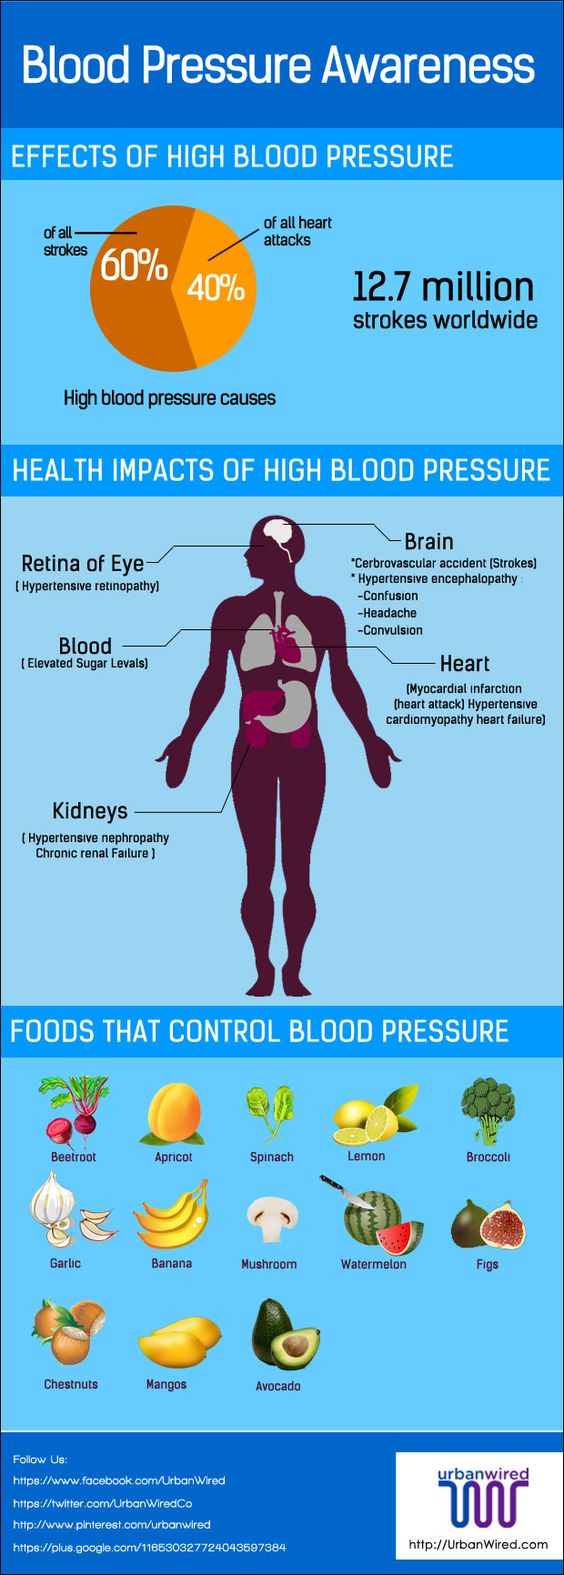 treatment for low blood pressure how to raise blood pressure